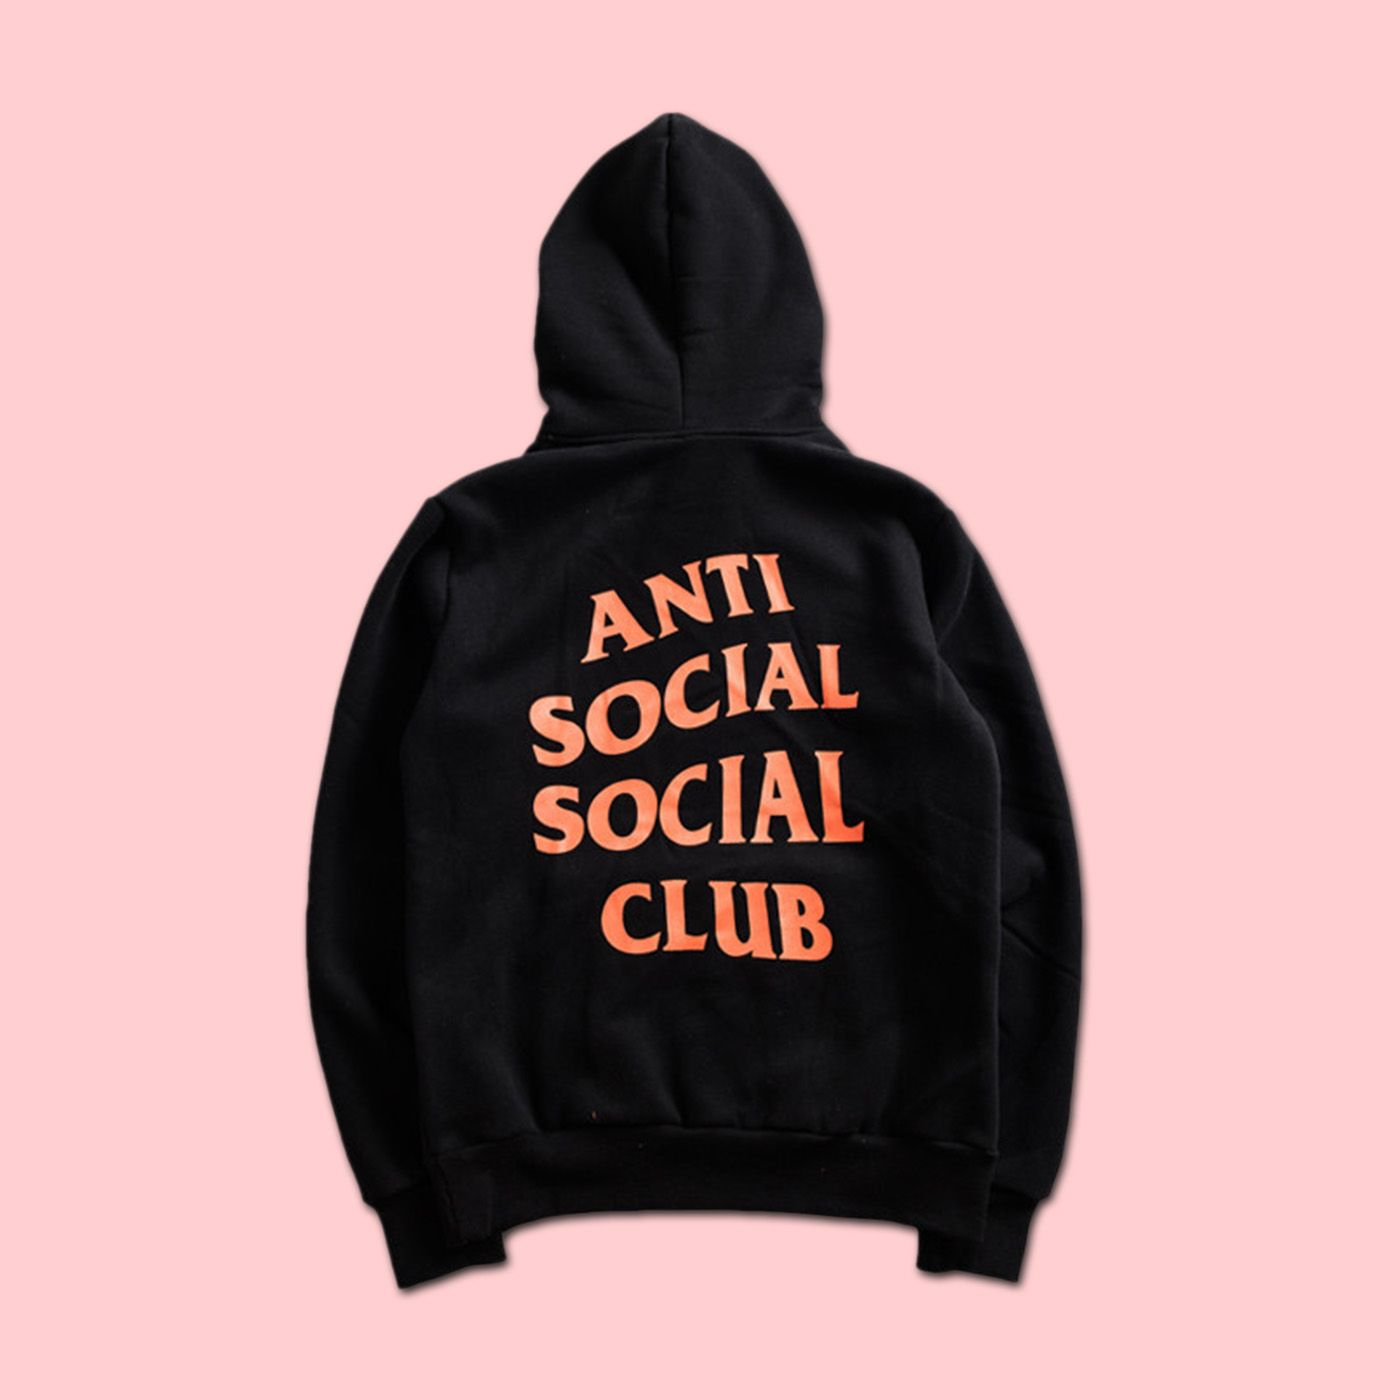 d7a0fbba8fd4 Anti-Social Social Club Hoodies Material  Cotton   Polyester Authentic  Items